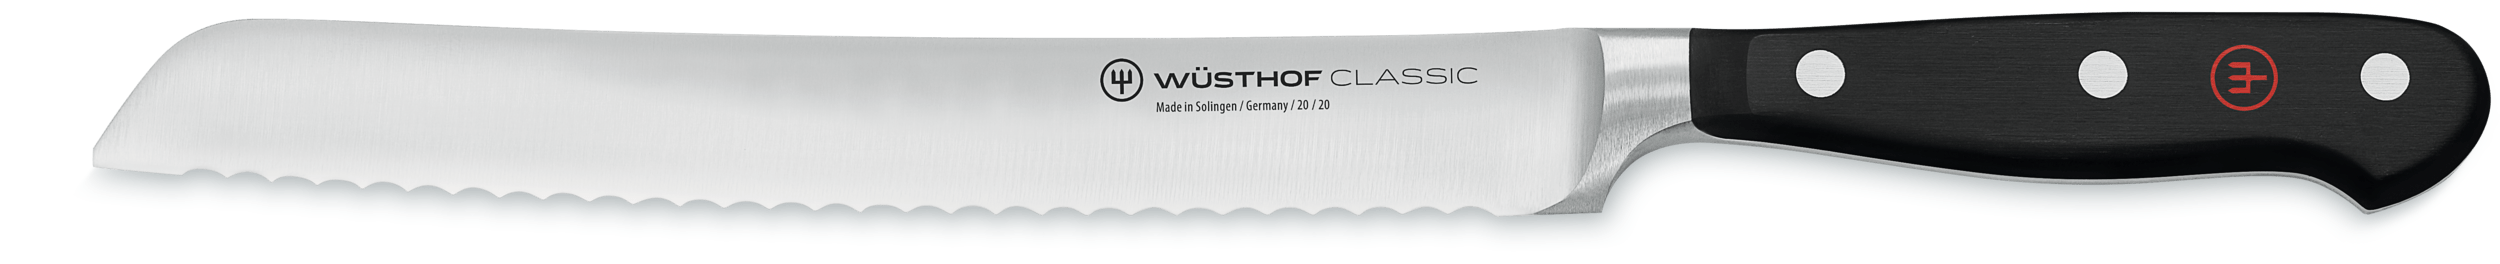 New Wüsthof Classic 3-piece Bread Knife Set 1120160304